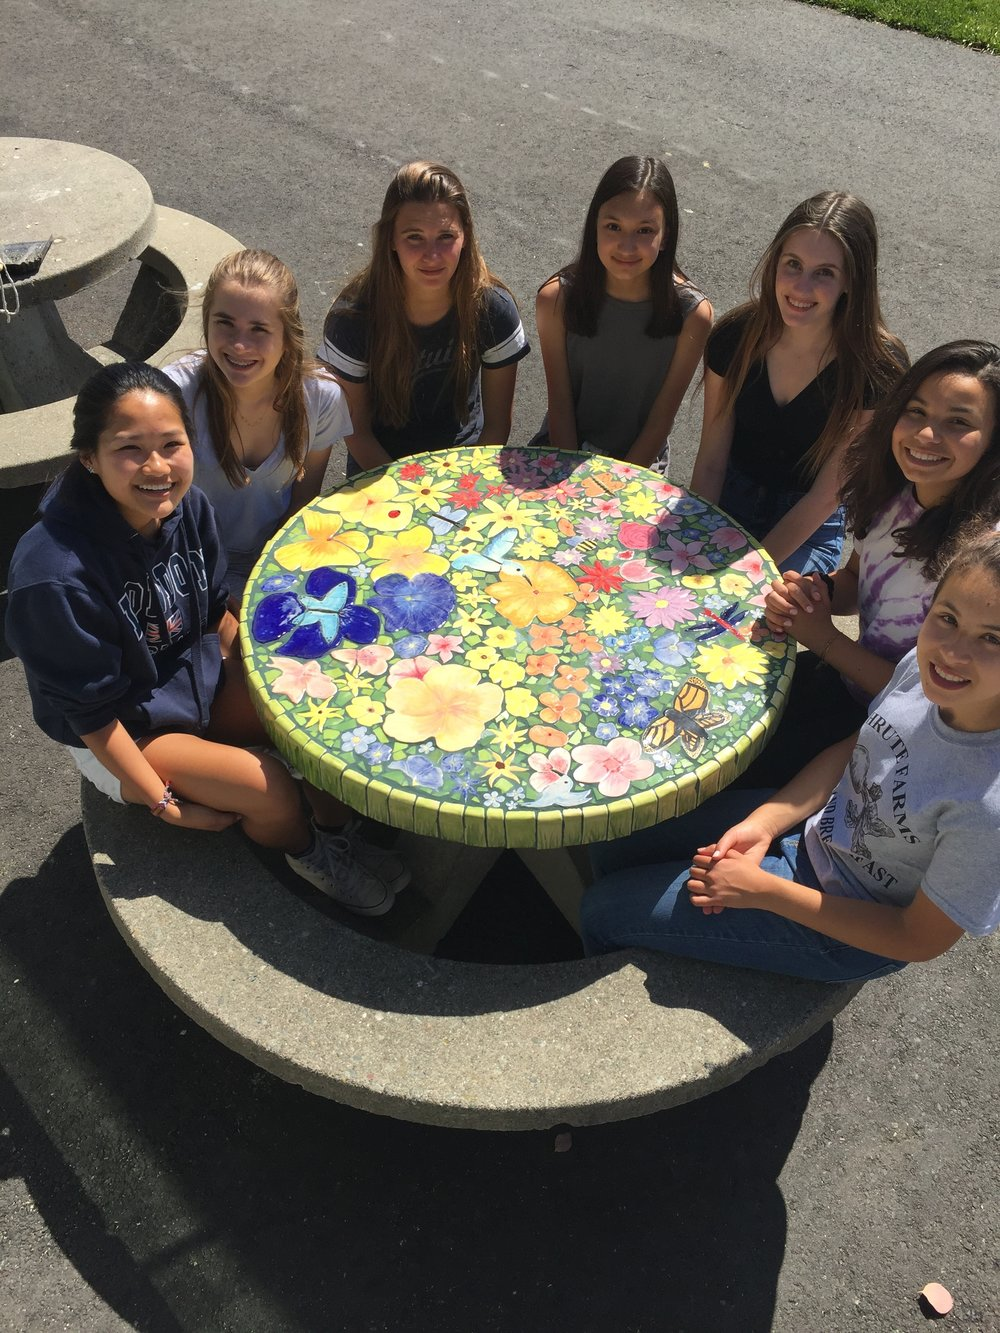 completed tile table and artists who made it